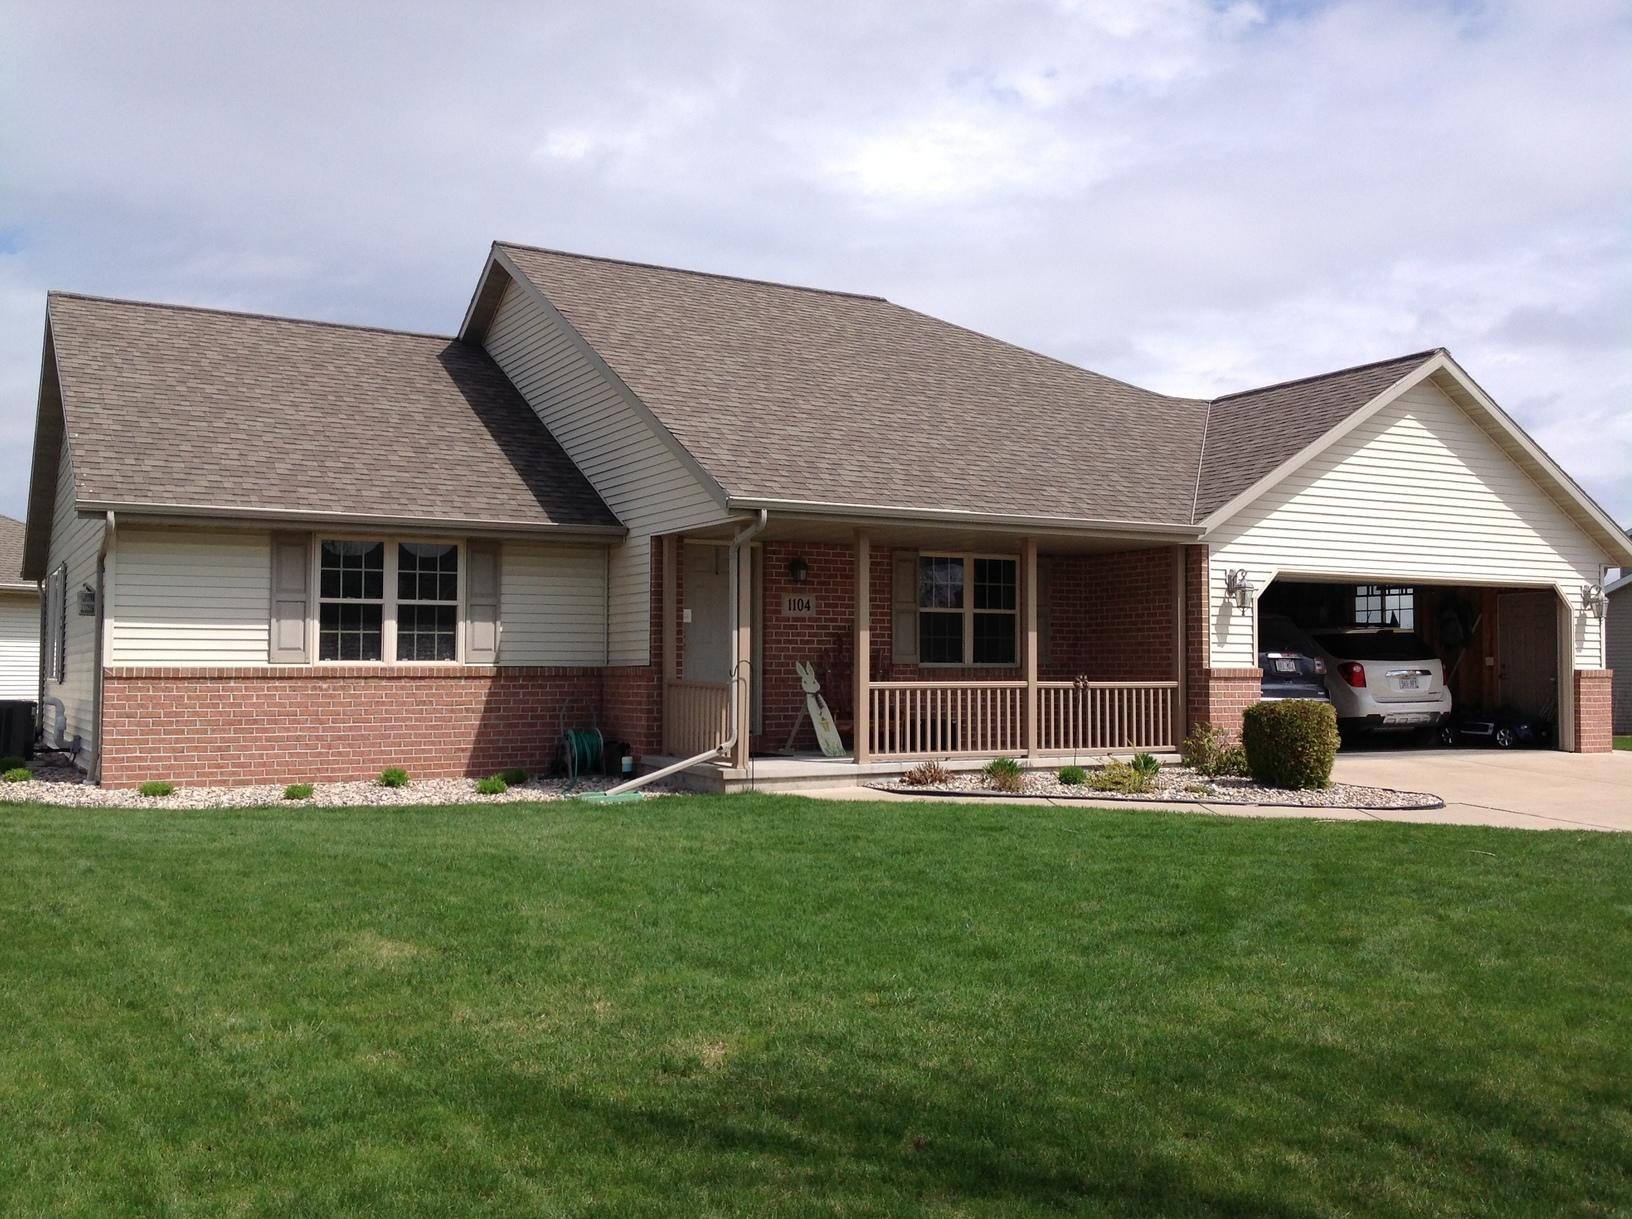 New GAF Timerline Ultra HD Roof installed in DePere, WI - After Photo